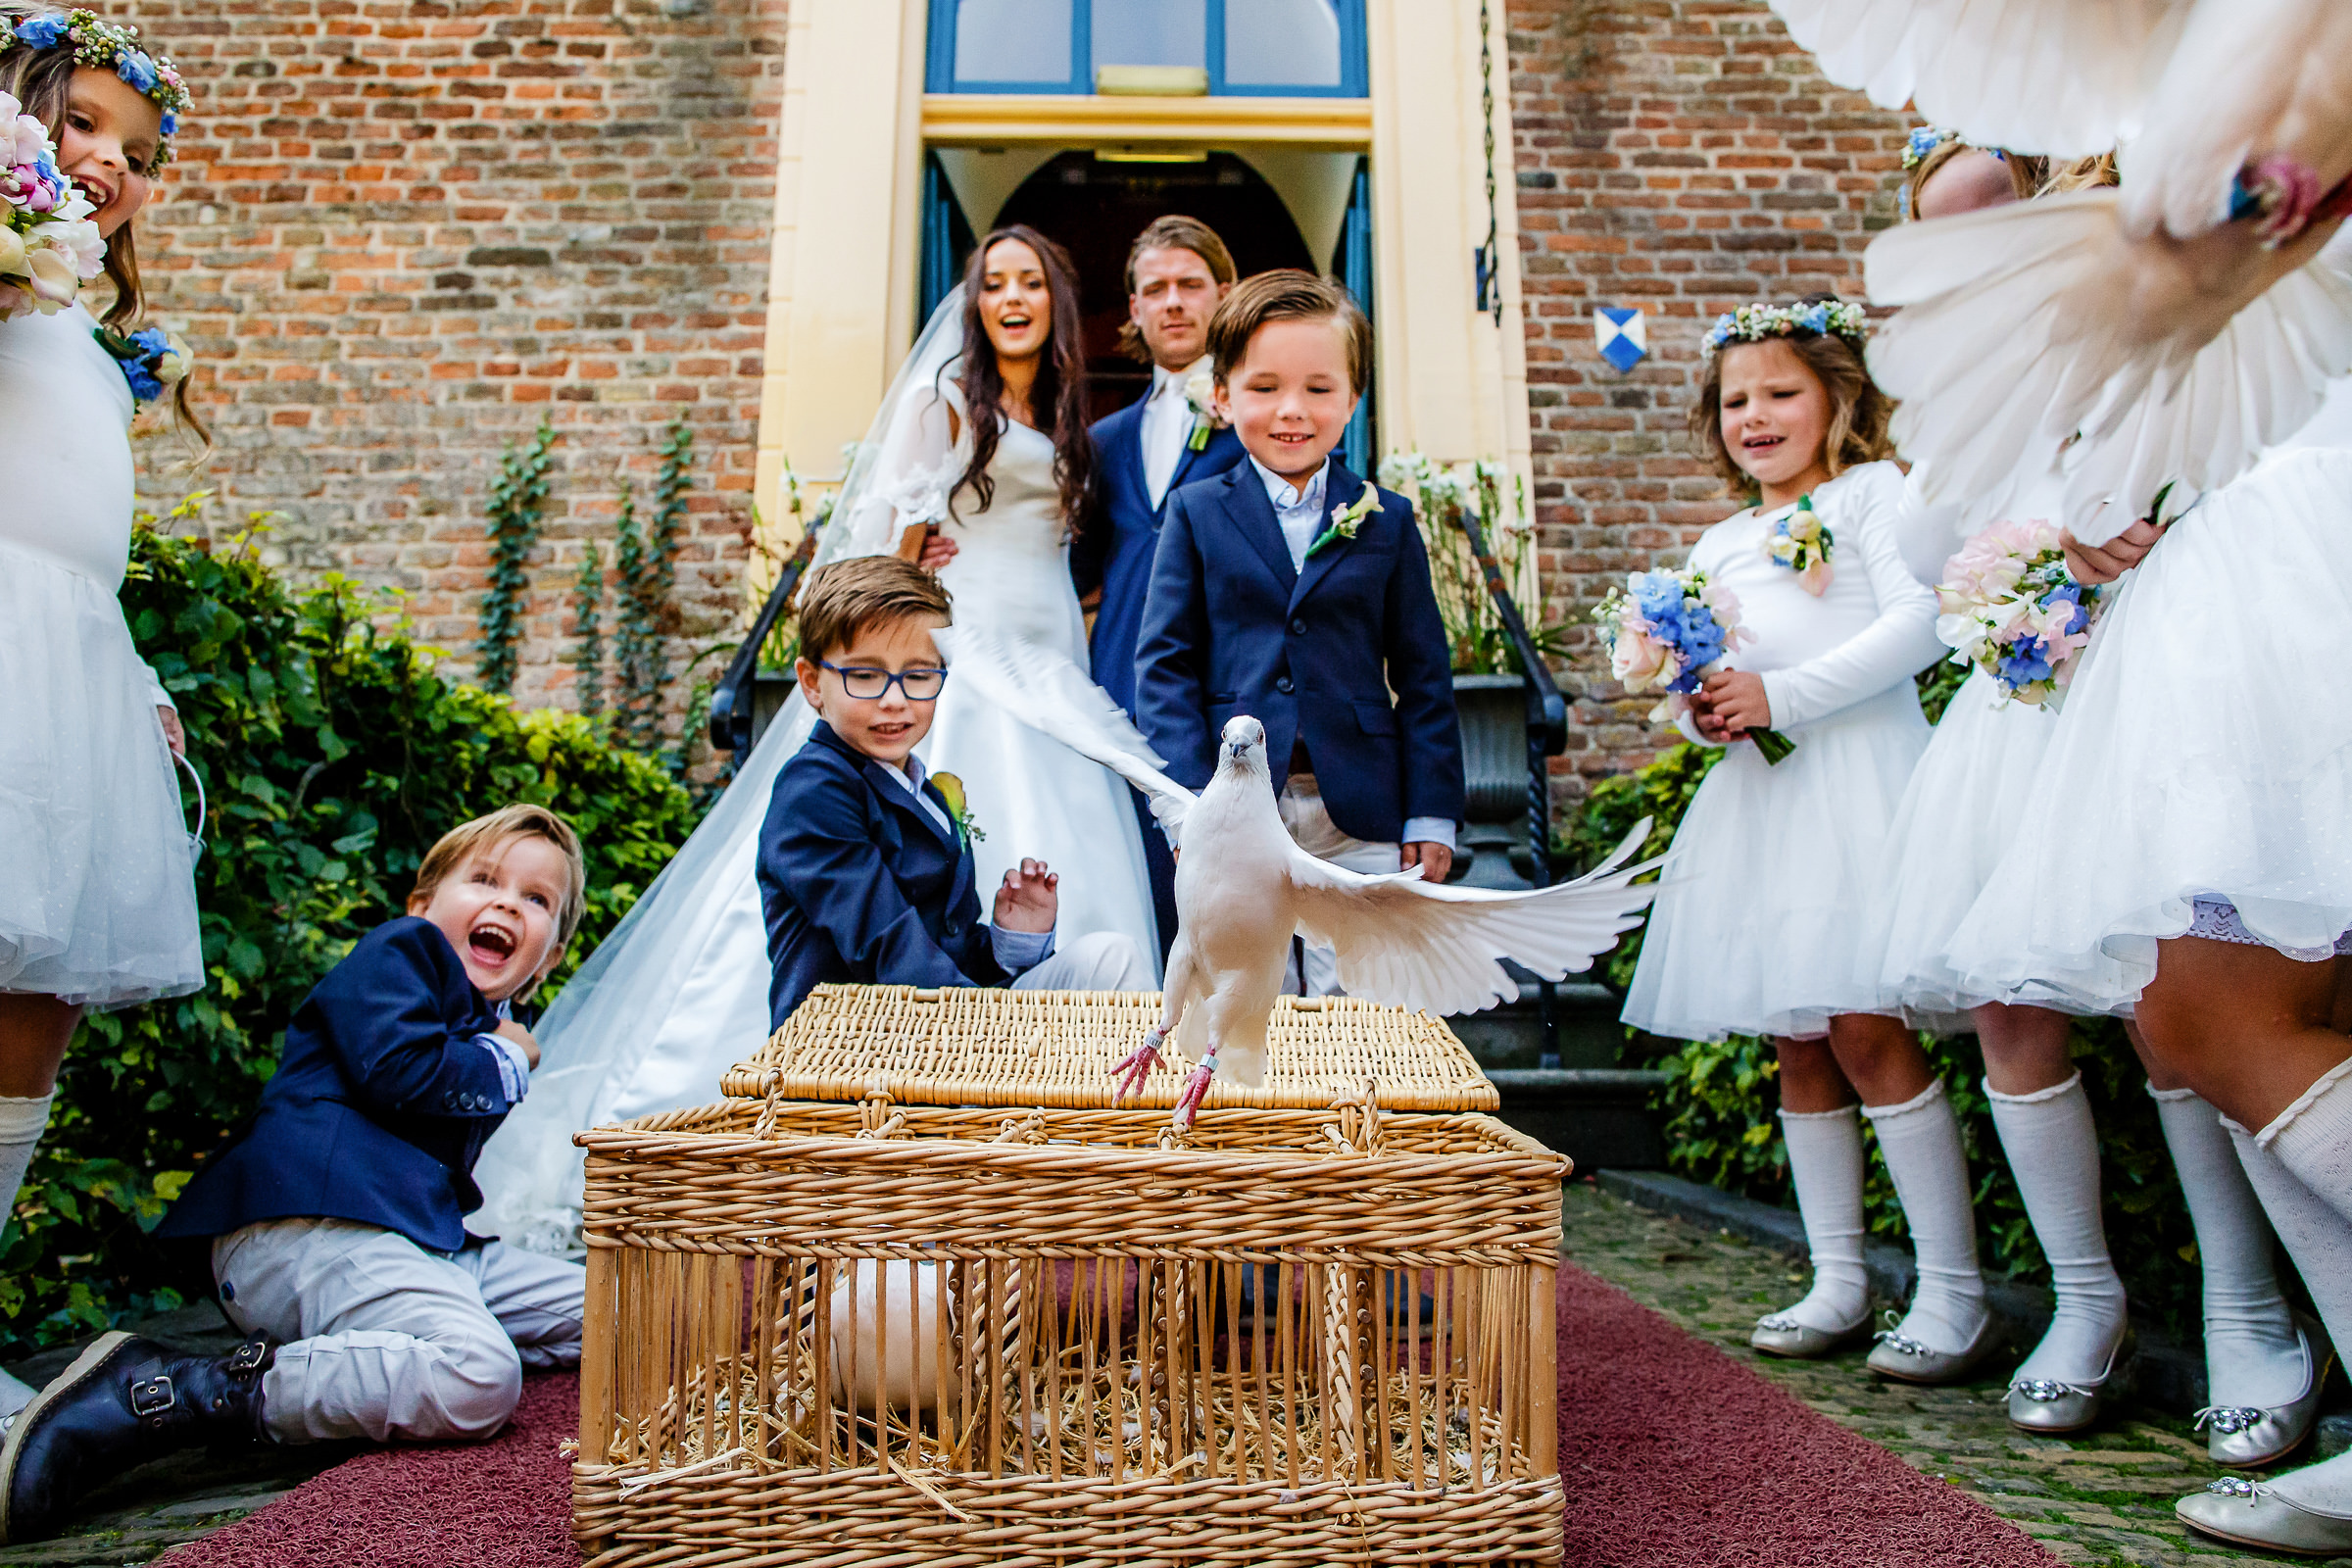 Doves fly out of wicker basket amidst flower girls and couple - photo by Peter van der Lingen Wedding Photography